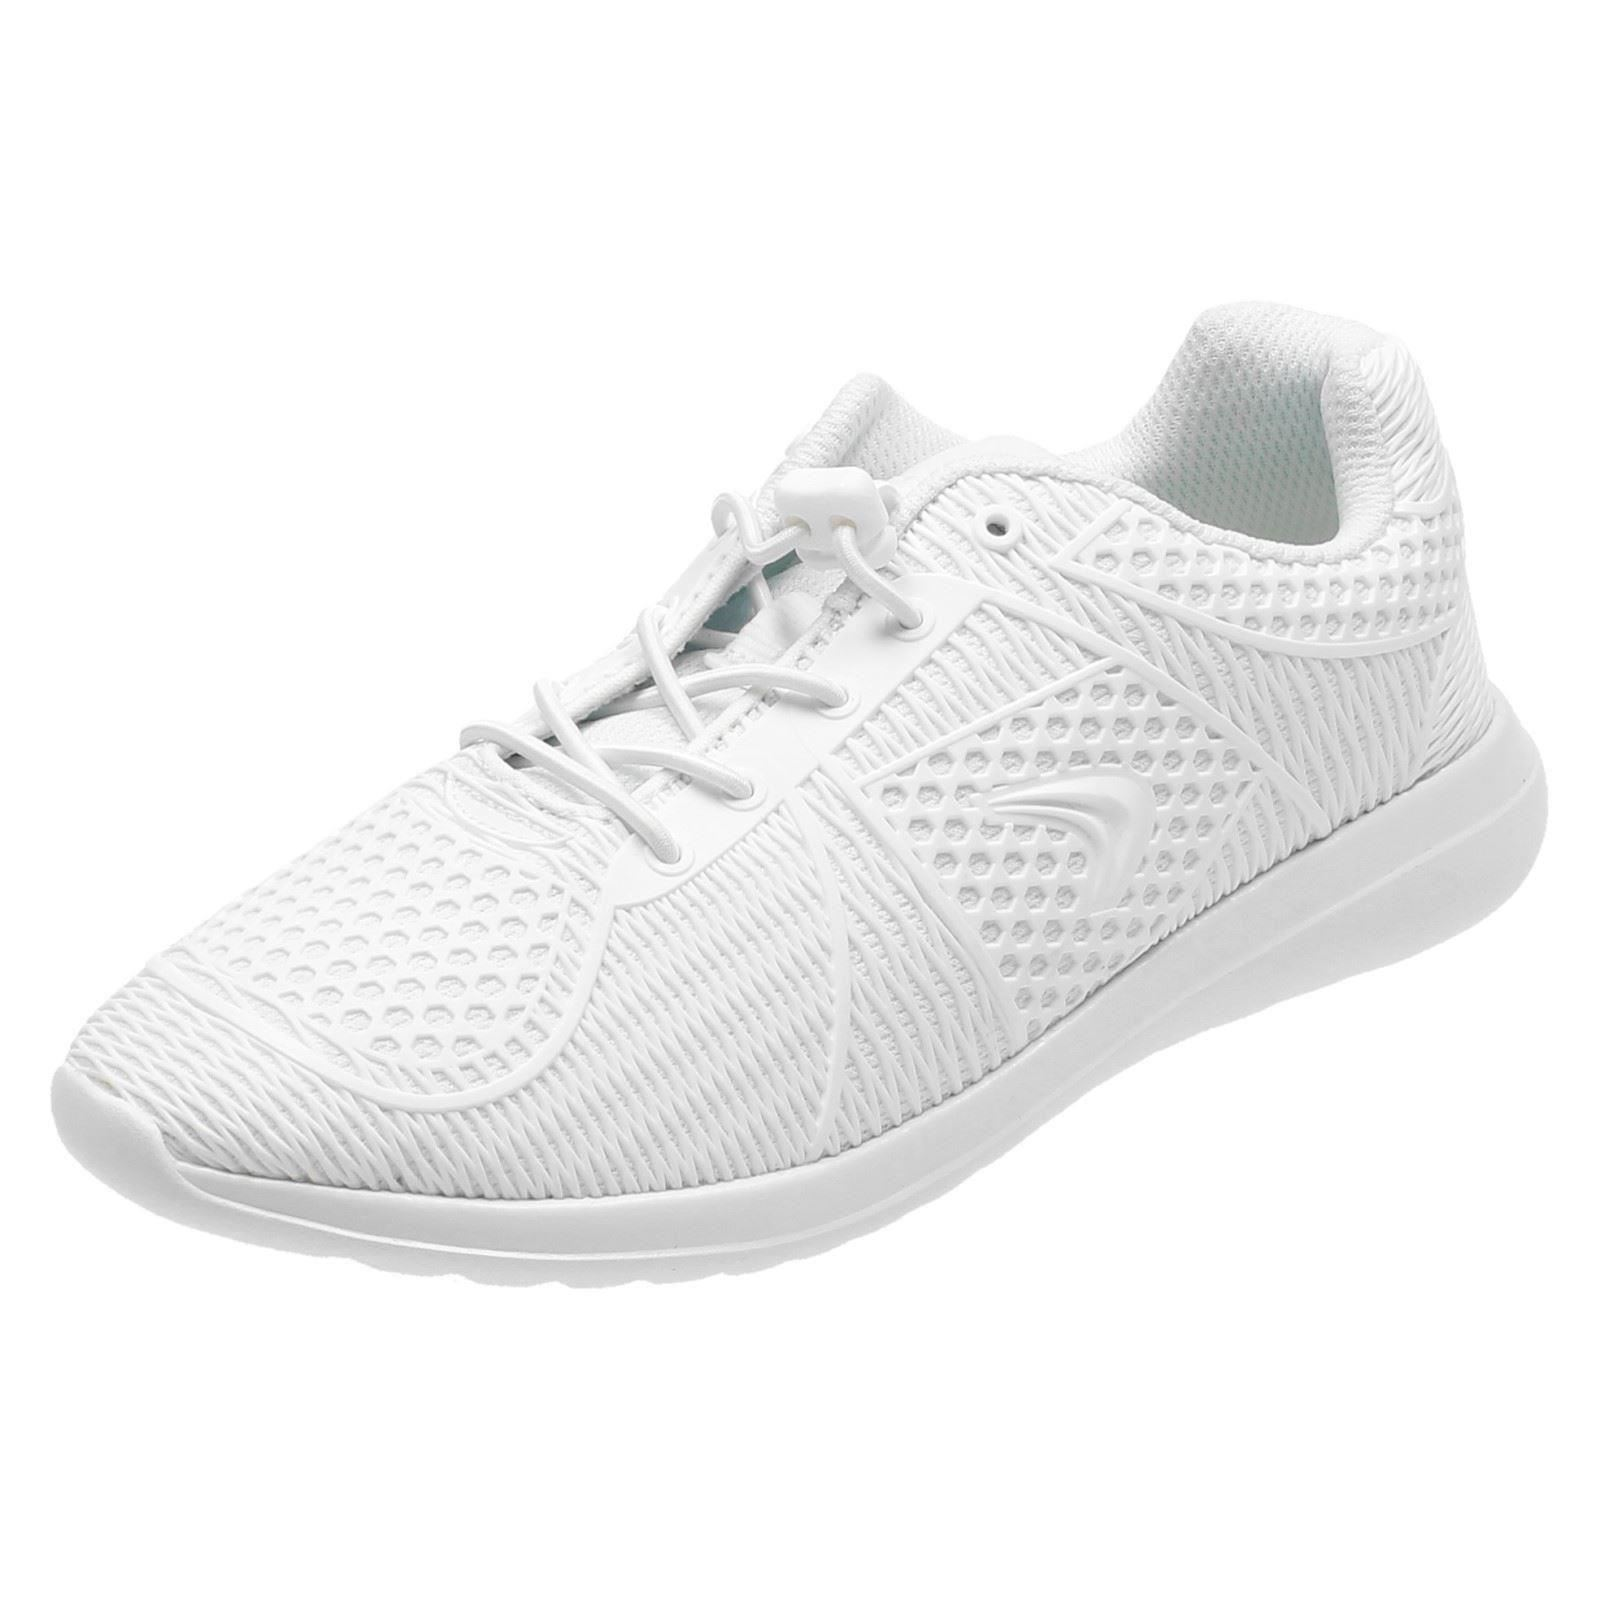 c3a2722e808 Boys Clarks Casual Speed Laces Lightweight Trainers Sprintlane UK 2.5 White  F. About this product. Picture 1 of 10; Picture 2 of 10 ...